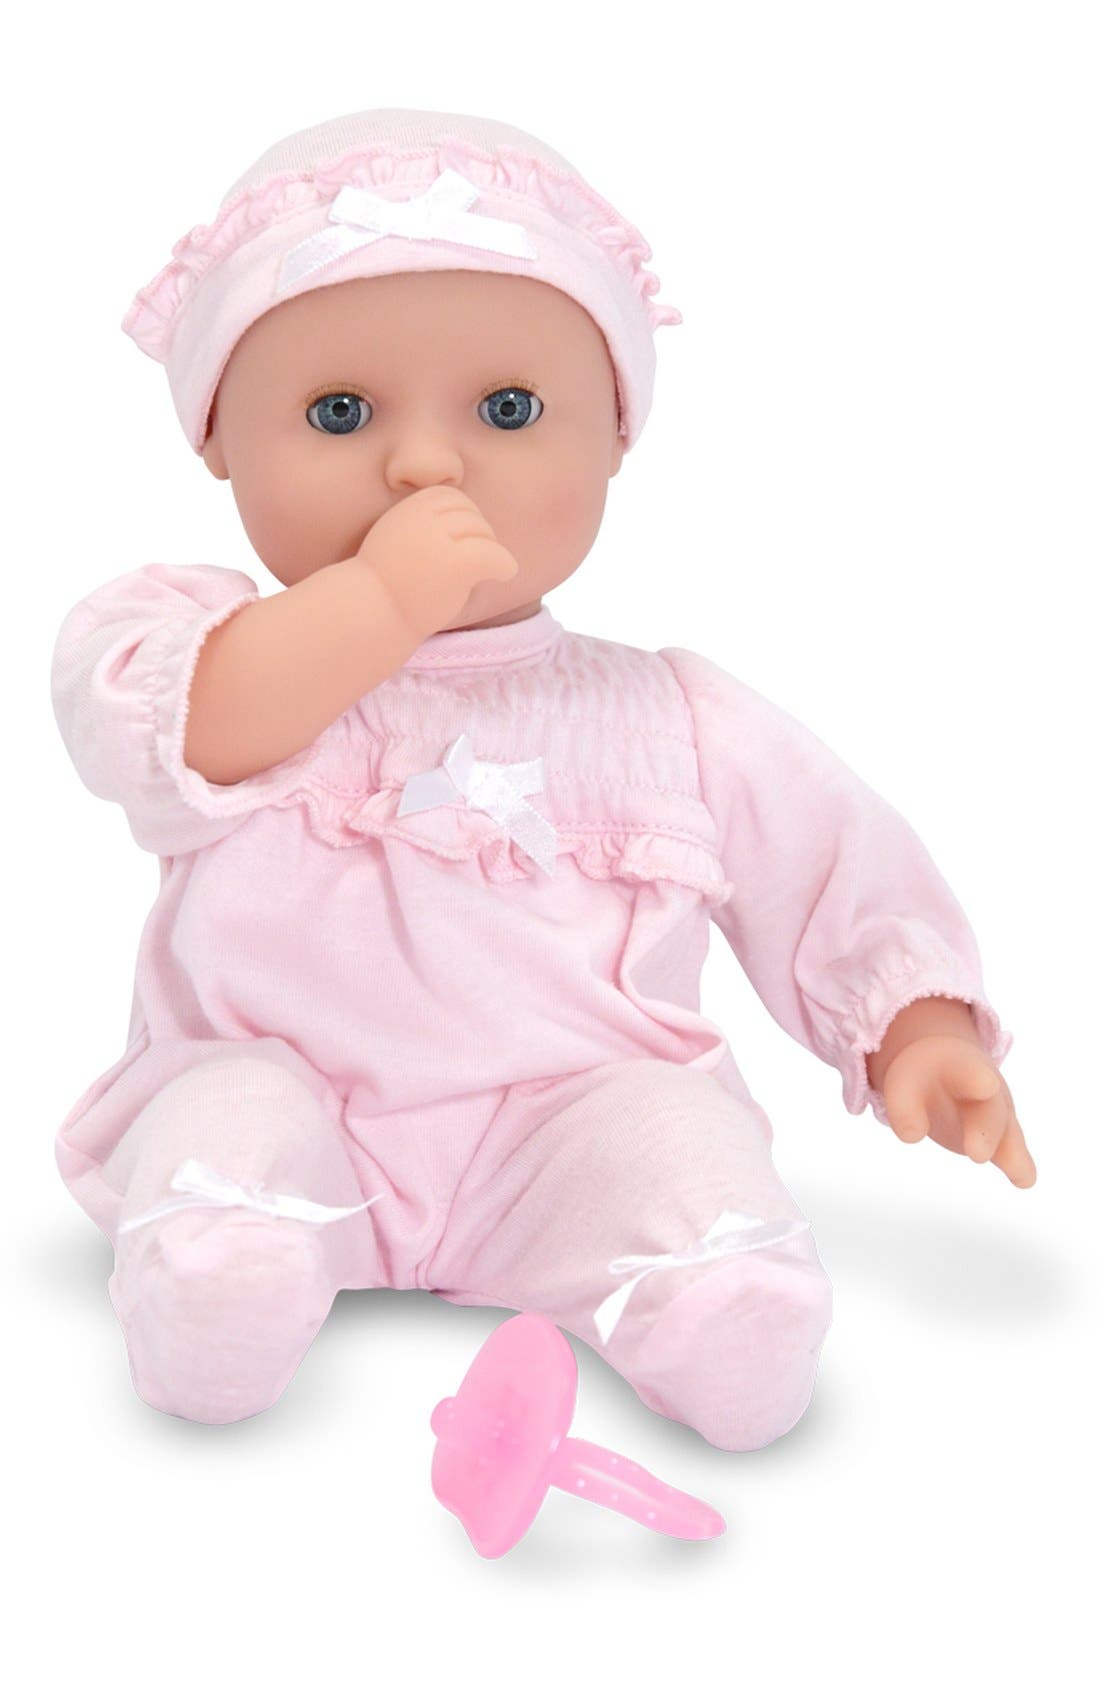 'Mine to Love - Jenna' Baby Doll,                             Main thumbnail 1, color,                             PINK